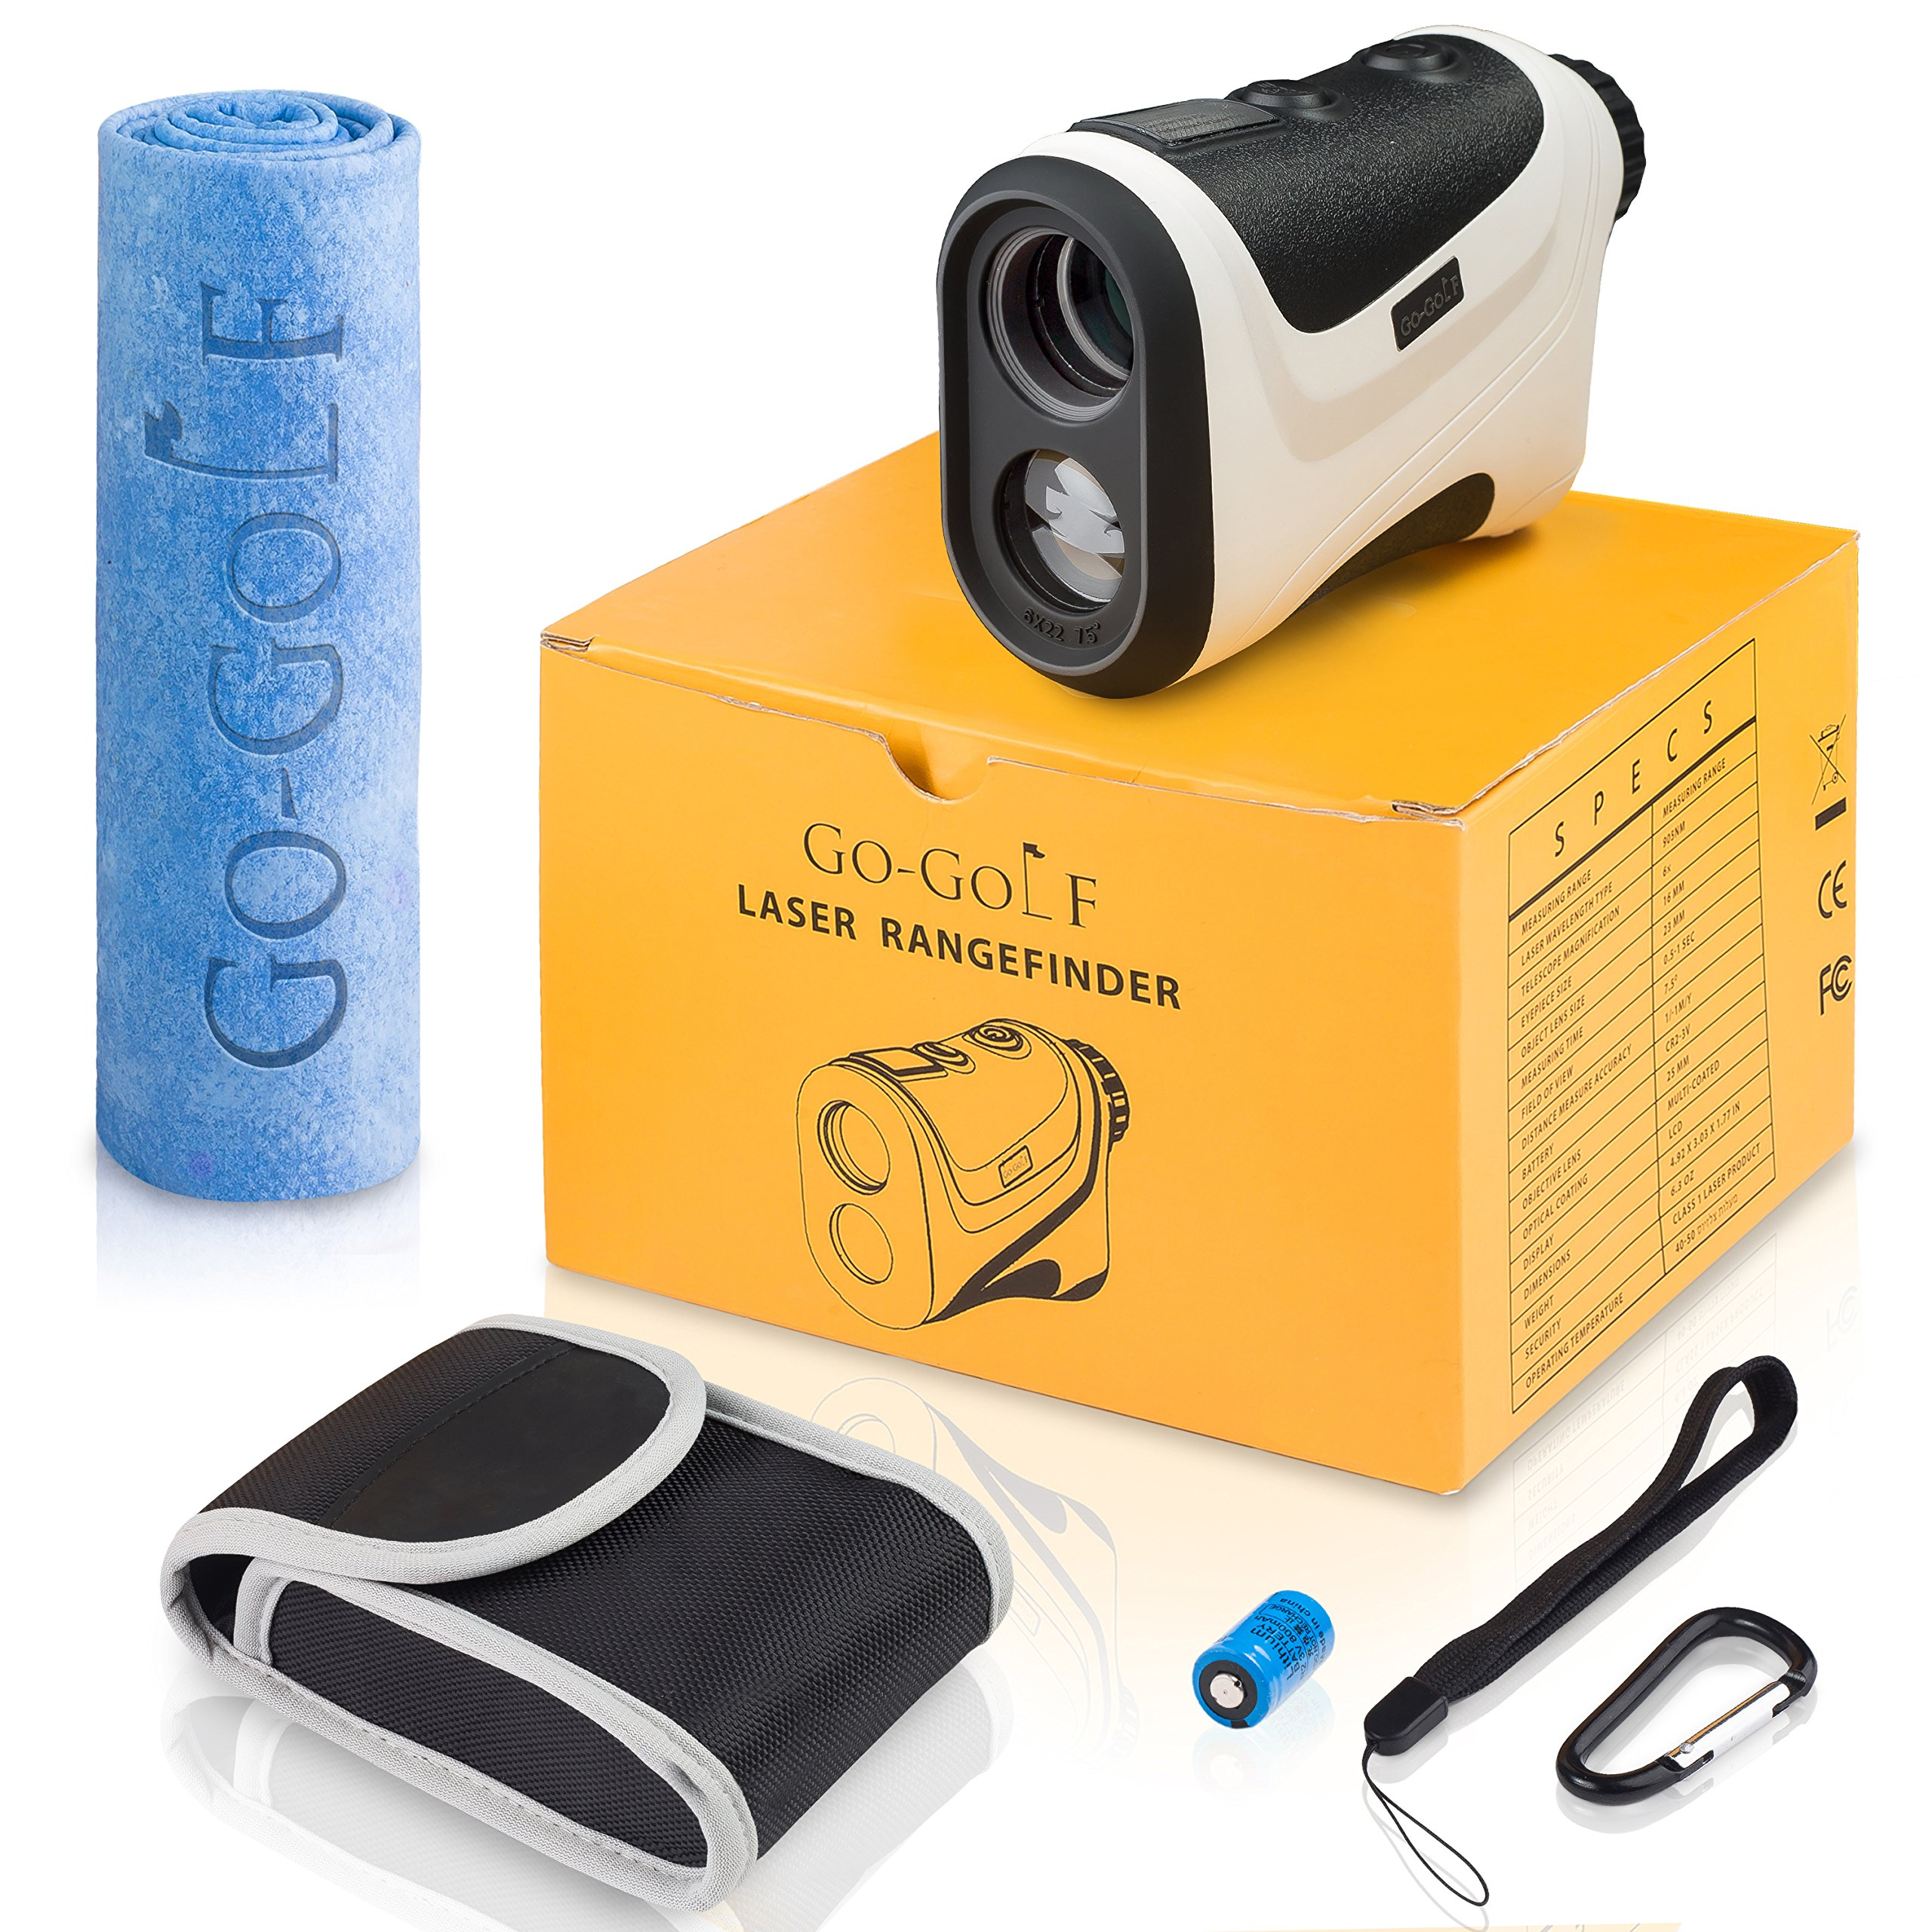 Go-Golf Golf Rangefinder | Laser Range Finder With Pin Sensor & Pulse Tech | Easy To Use, Compact, Accurate & Clear Reading | Golf Binoculars Yardage Rangefinder by Go-Golf